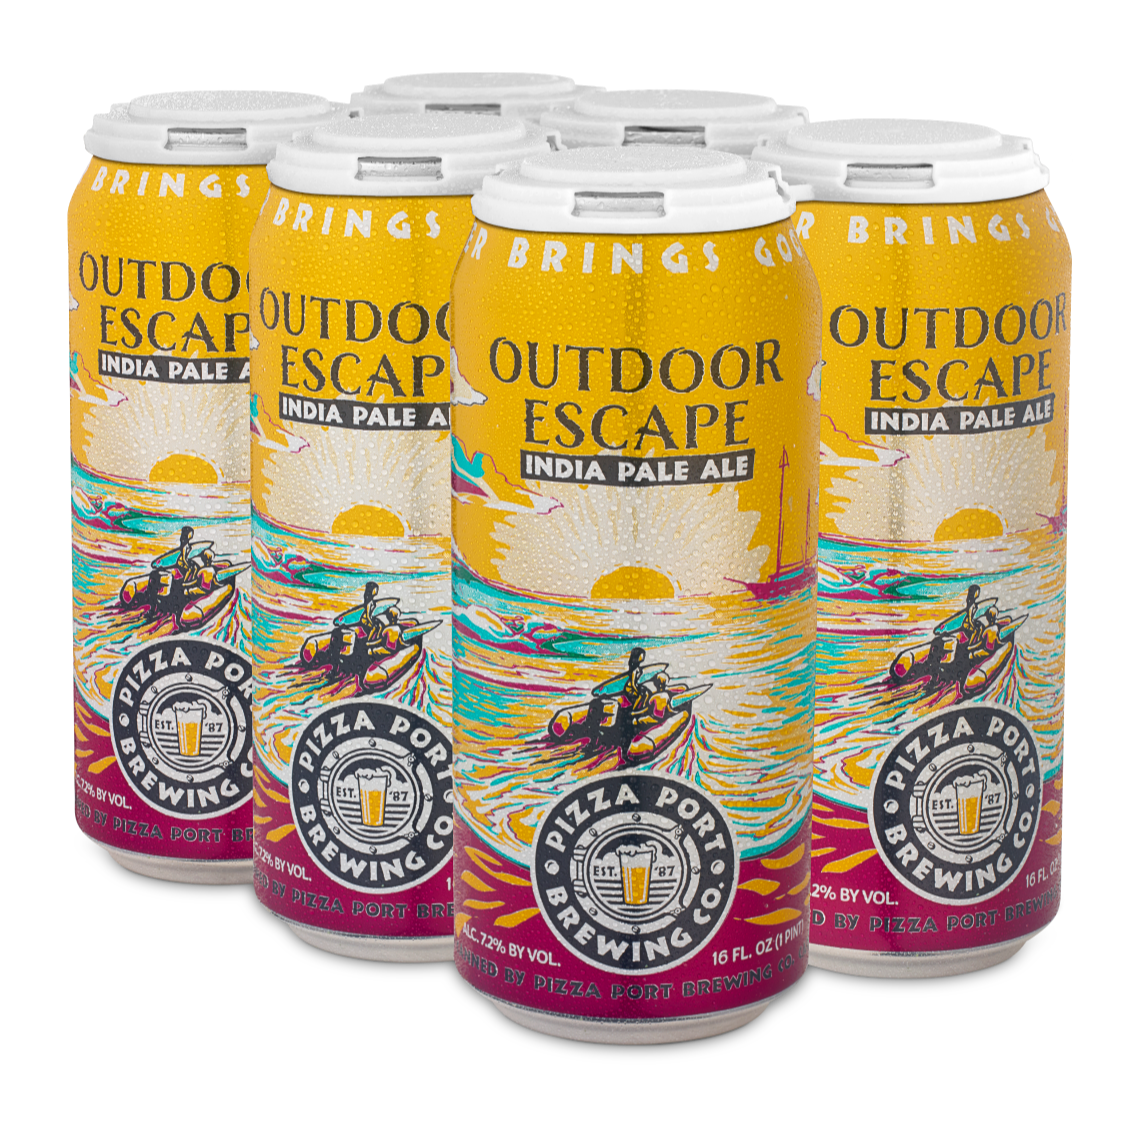 Outdoor Escape Packaging